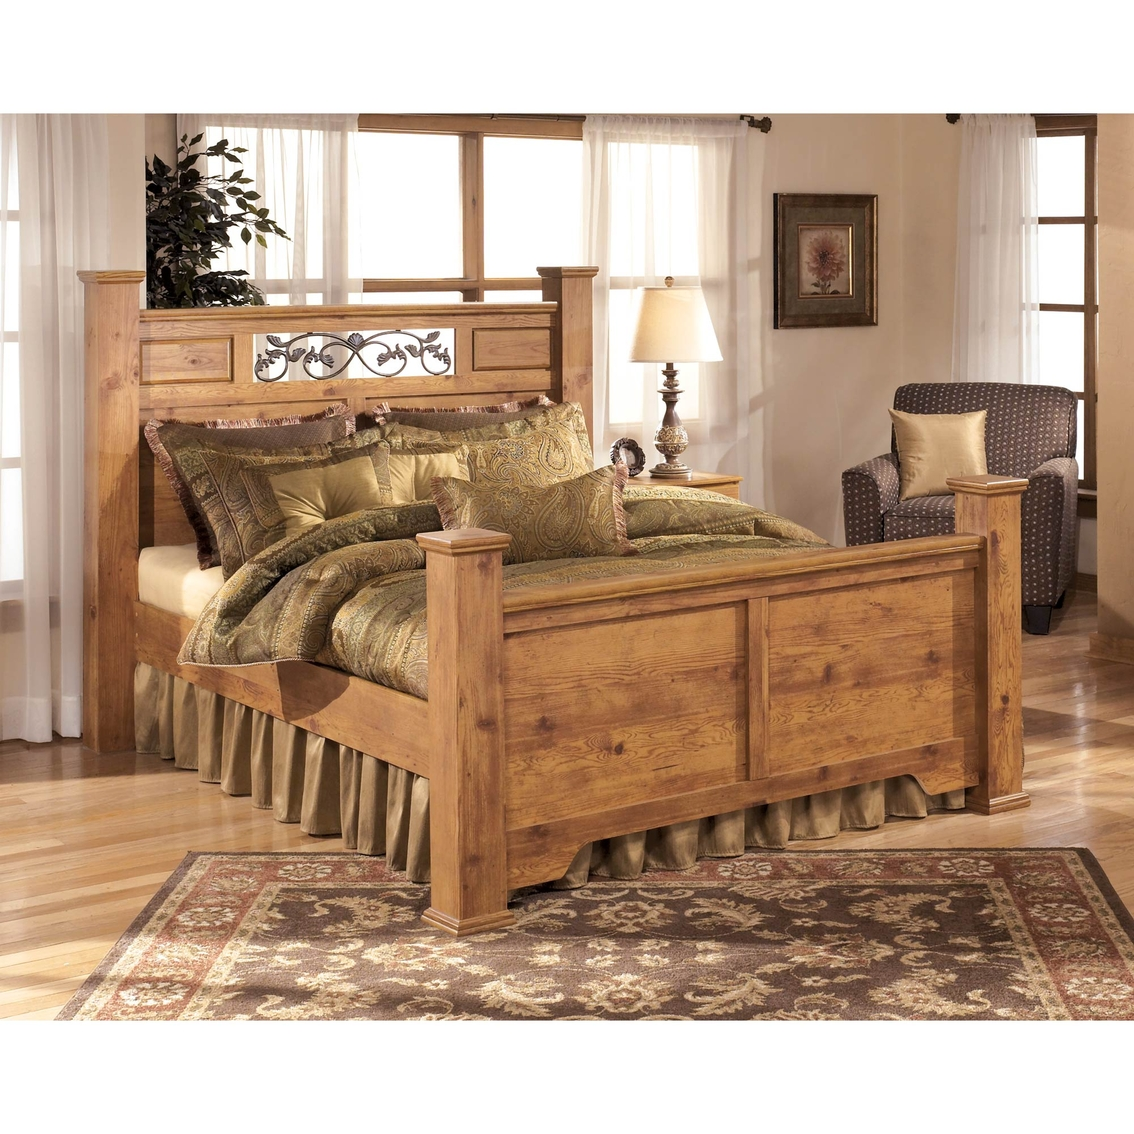 Signature Design By Ashley Bittersweet Poster Bed Beds Home Appliances Shop The Exchange